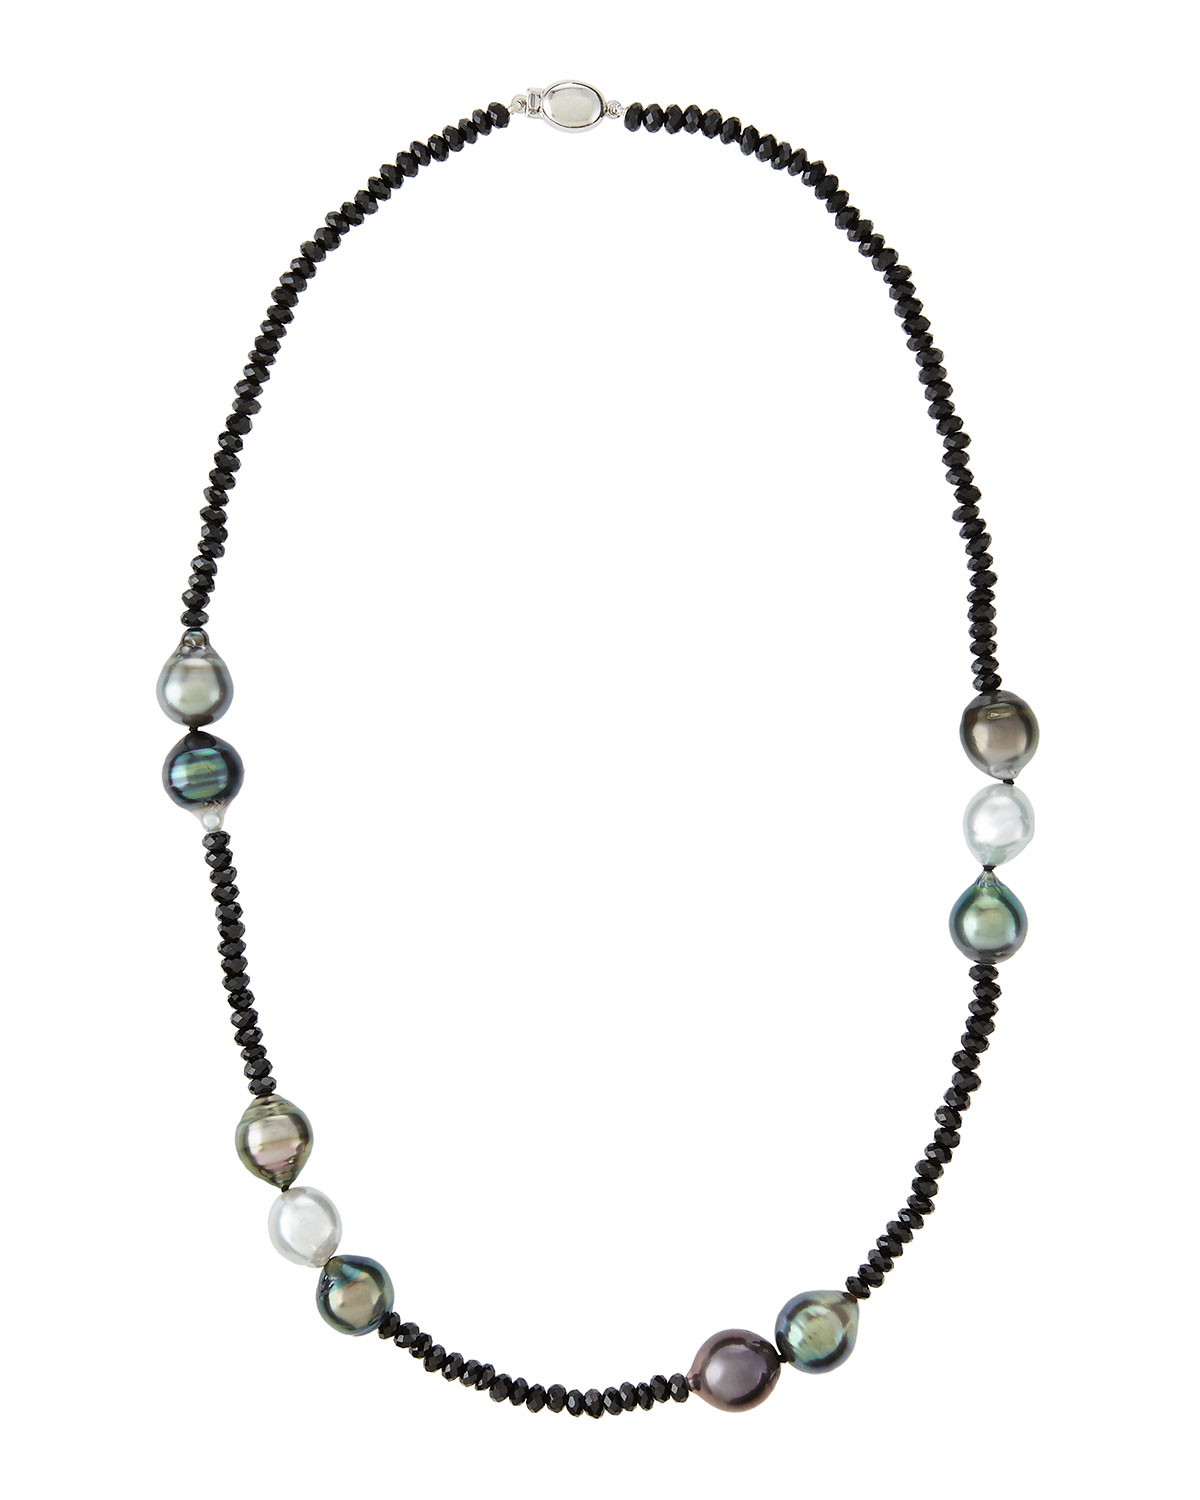 Belpearl 14k Tahitian Pearl & Spinel Necklace 5g4hybPT